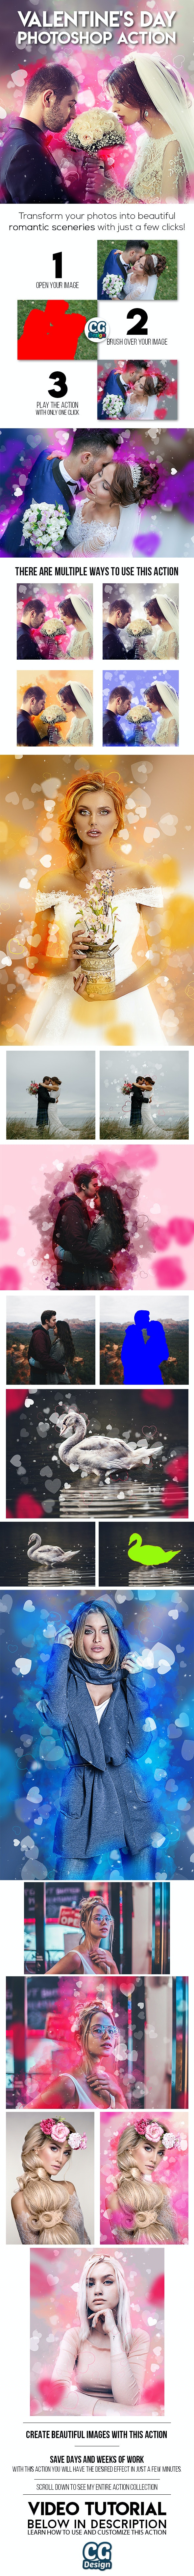 Valentine's Day Photoshop Action - Photo Effects Actions